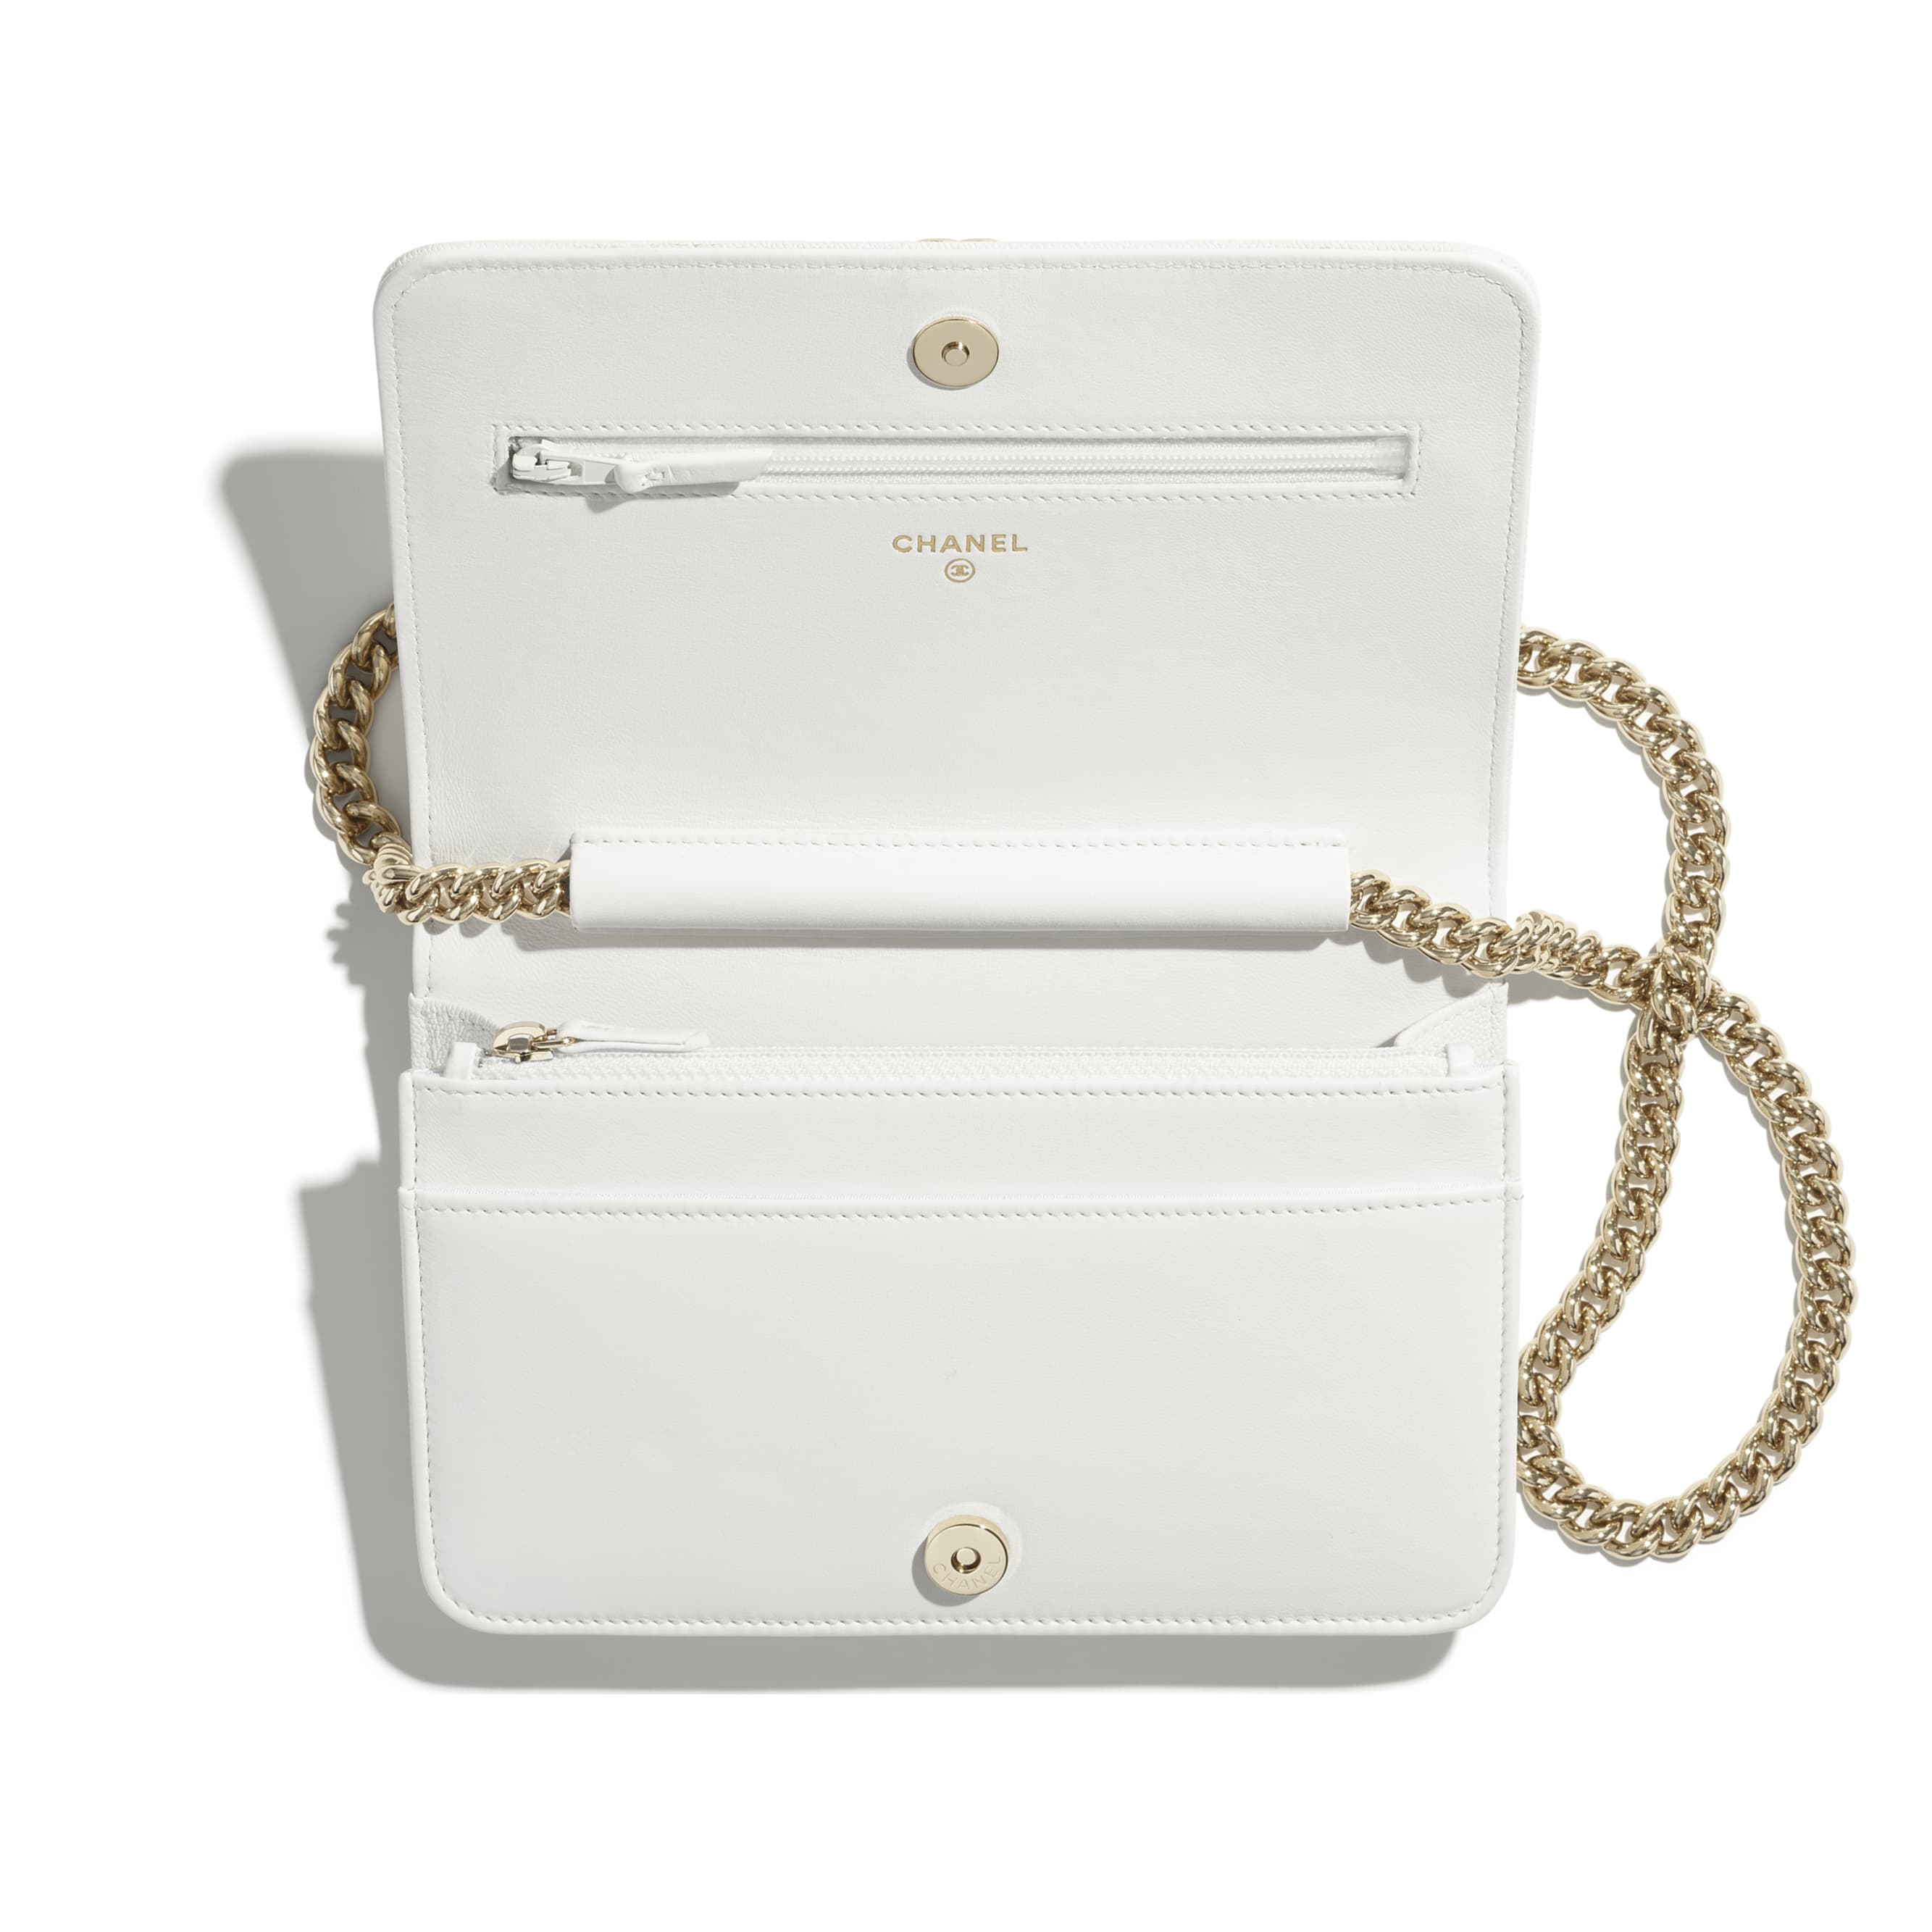 BOY CHANEL Wallet On Chain - White - Grained Calfskin & Gold-Tone Metal - CHANEL - Alternative view - see standard sized version